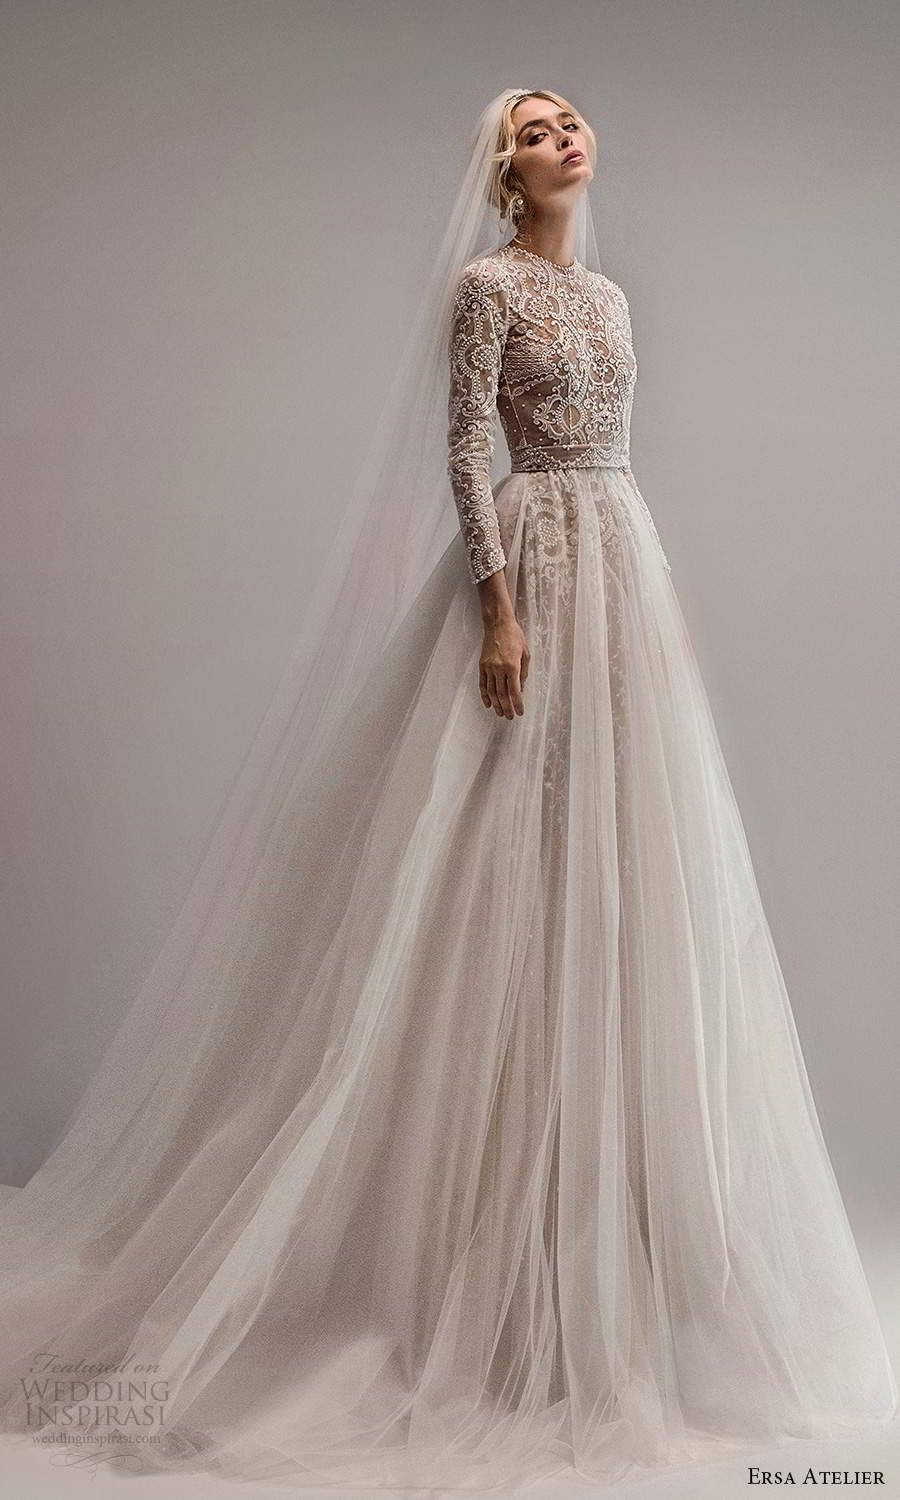 ersa atelier spring 2021 bridal long sleeve jewel neckline fully embellished sheath wedding dress ball gown overskirt chapel train (8) mv